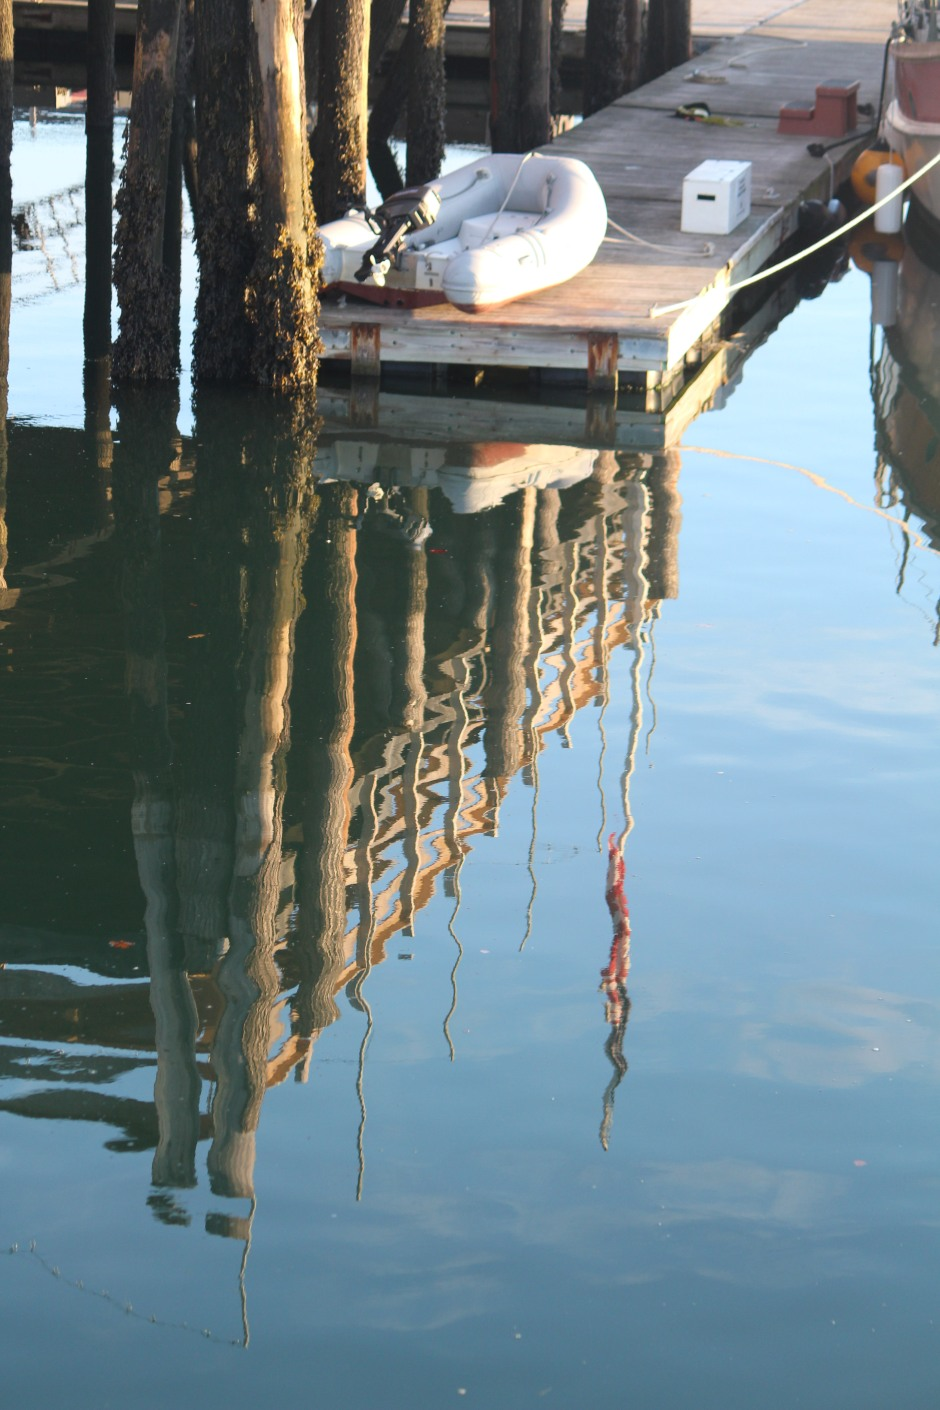 A reflection at the waterfront in Castine, Maine offers a glimpse of morning light on still water.